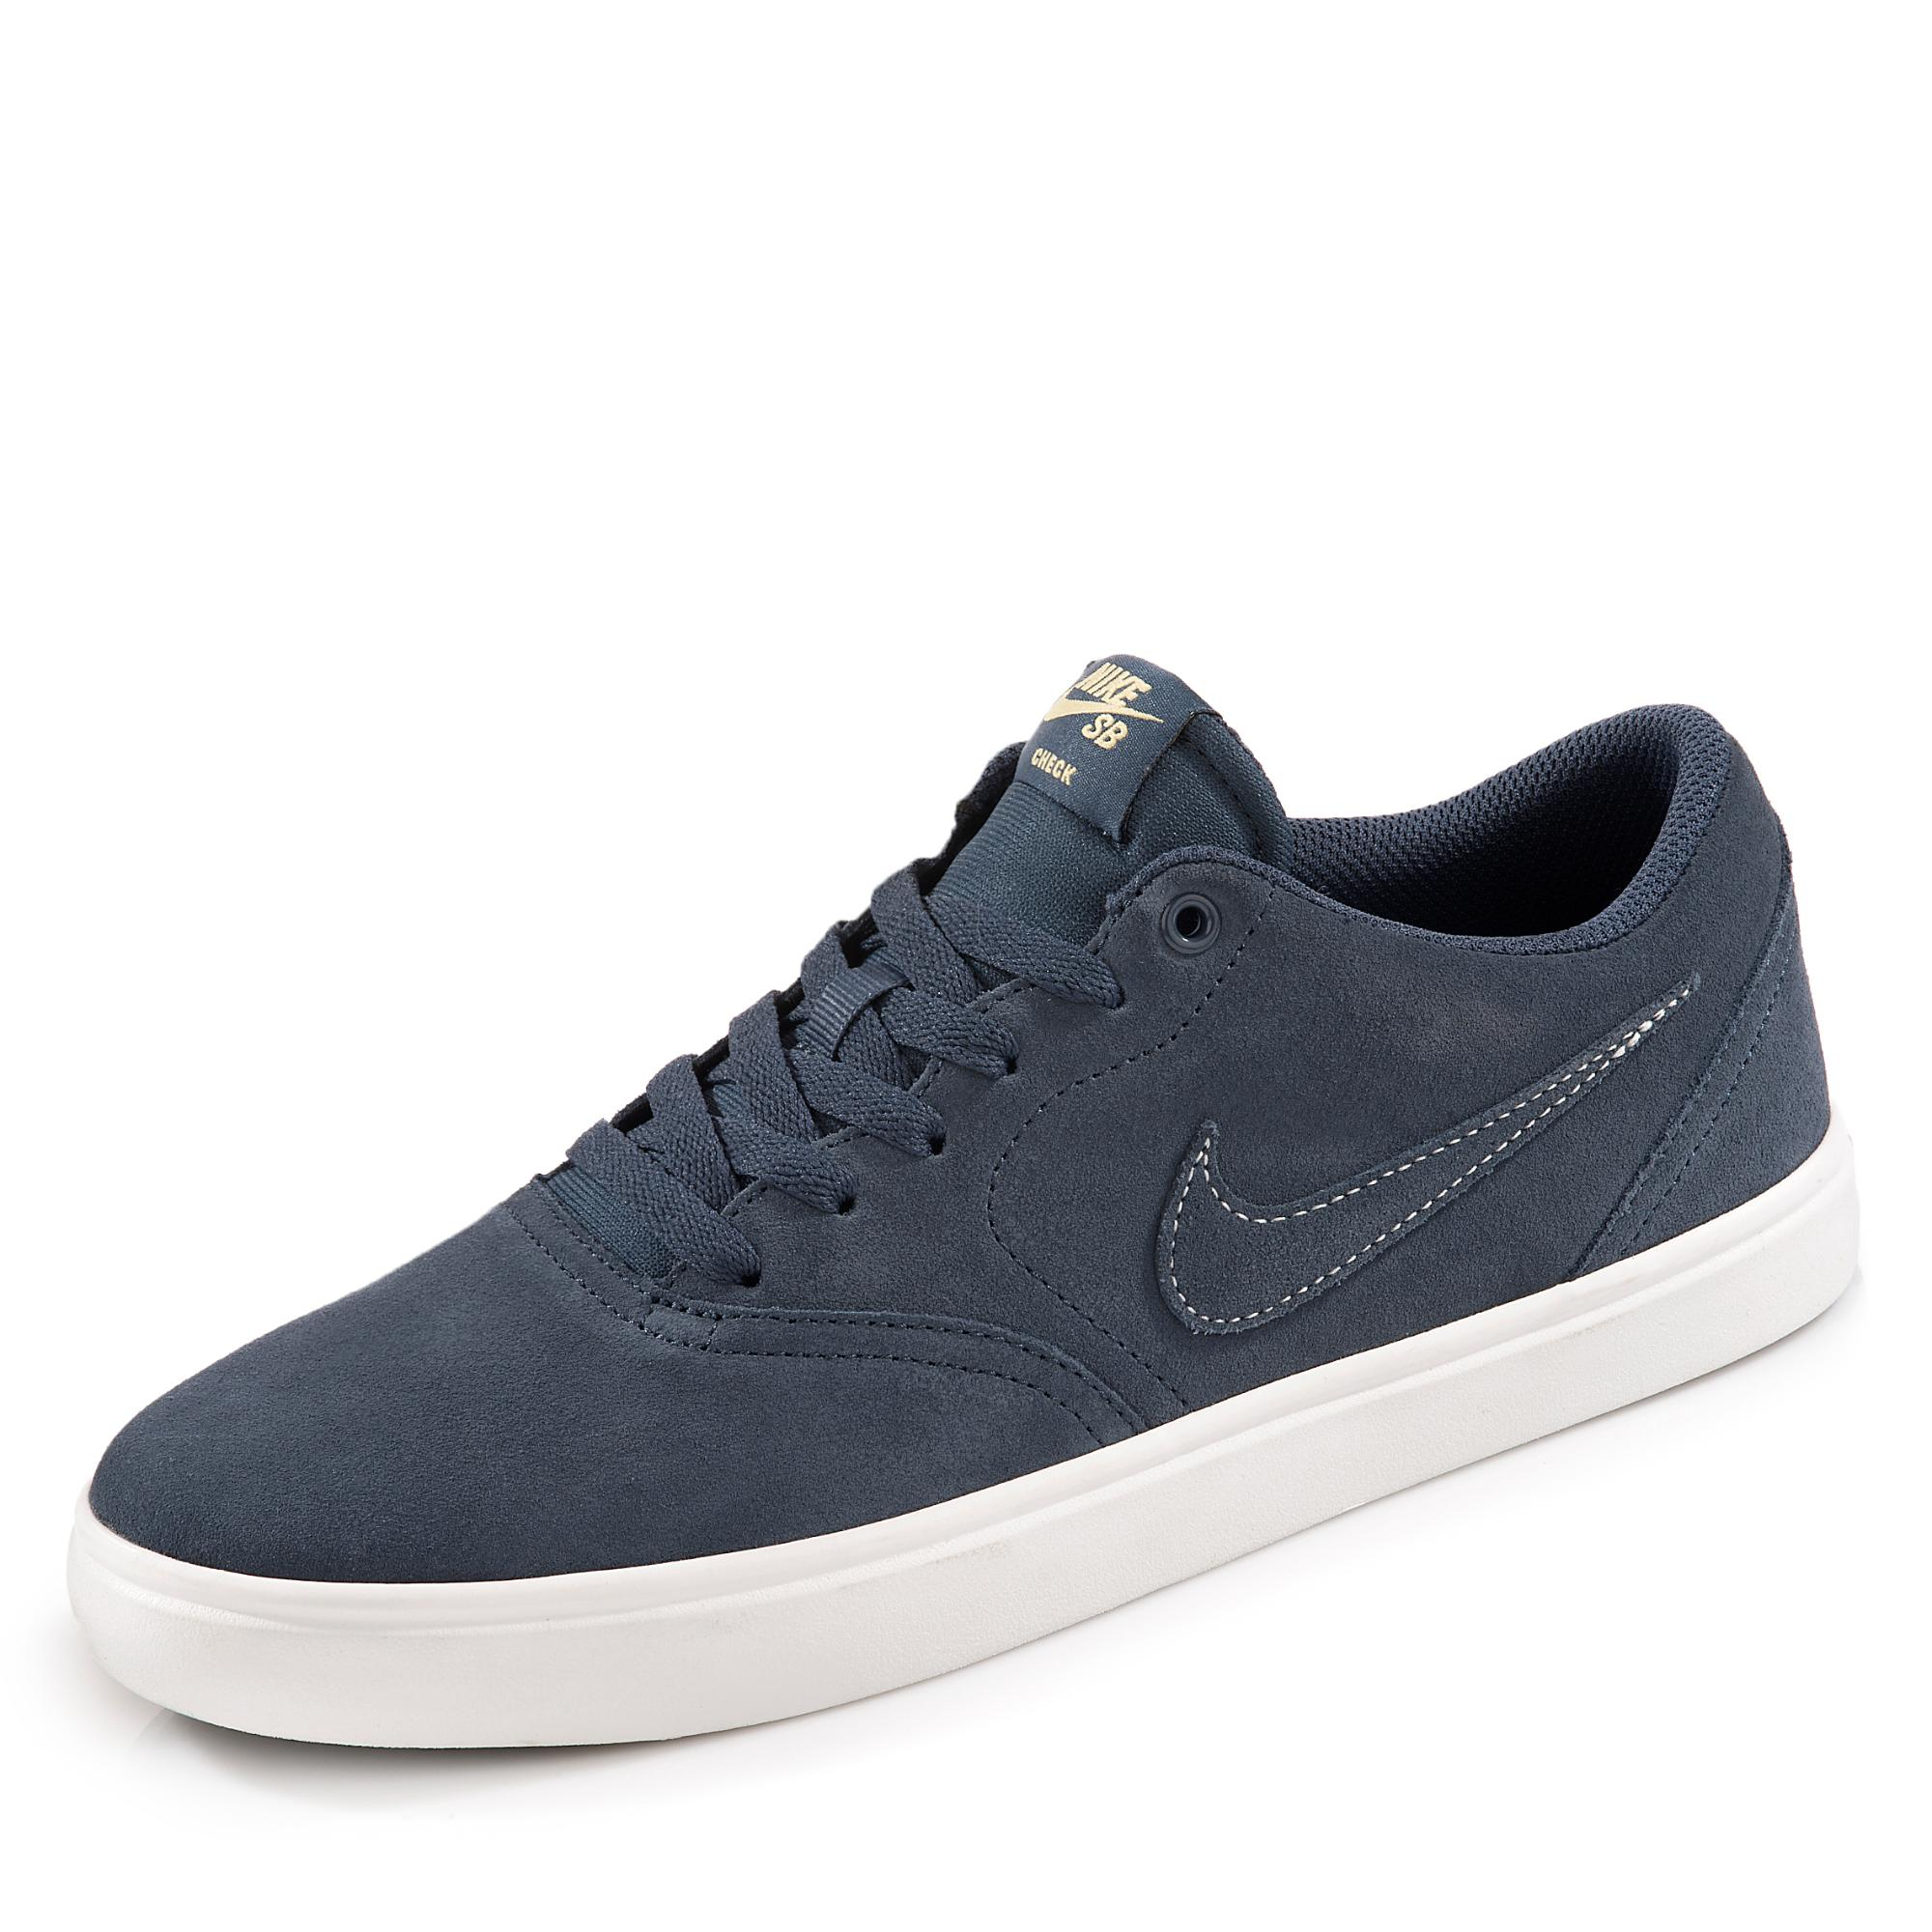 best sneakers 4d193 4d943 Nike Tech Fleece Printed SchwarzDunkel Grau HeatherSchwarz Shorts, Nike  Tiempo Mystic V IC WeißTtal OangeShwarz IndoorCourt Fußballschuh,Nike Free  TR ...